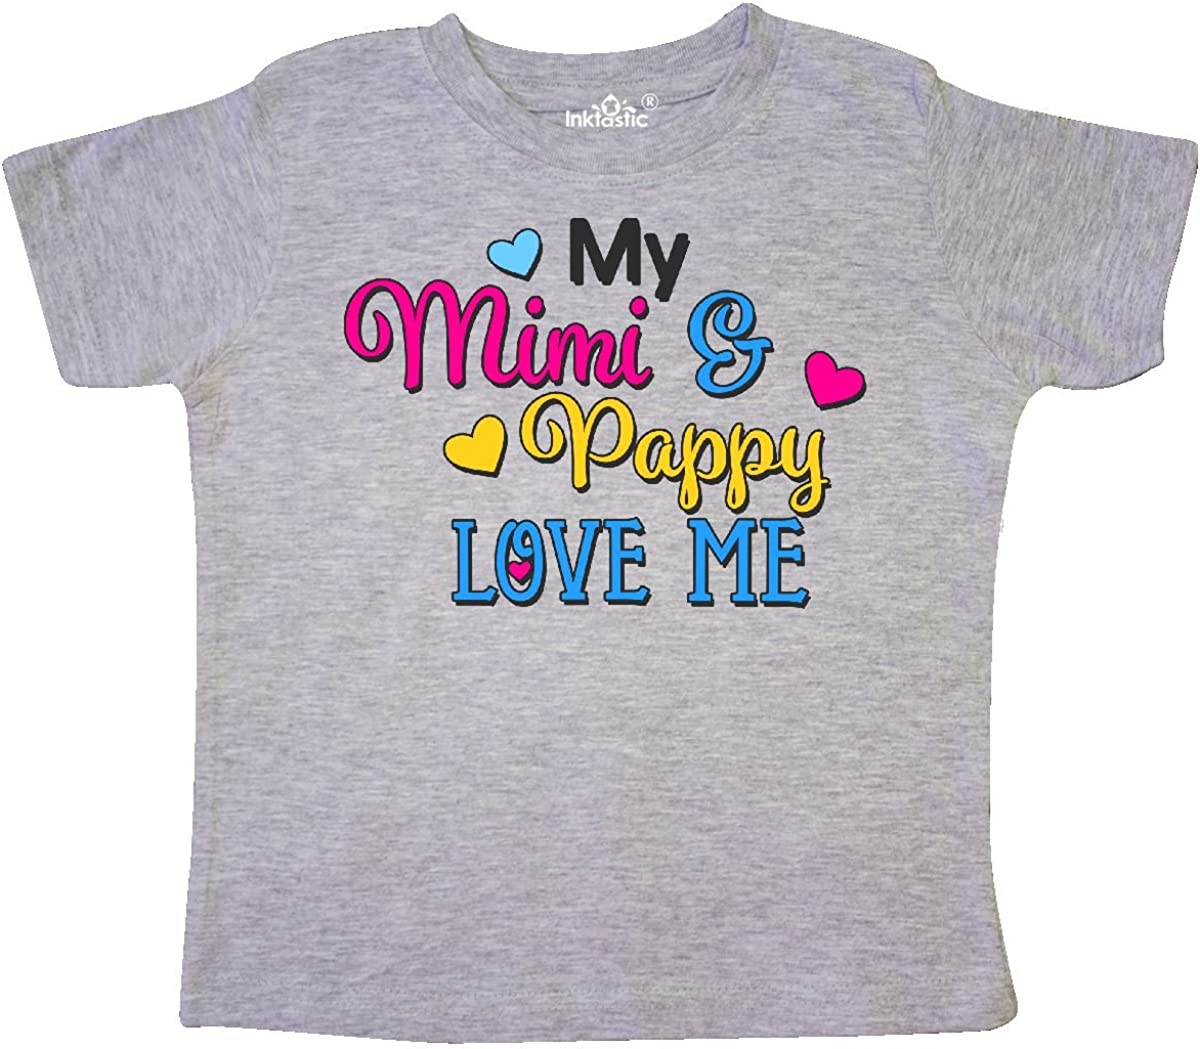 inktastic My Great Grandpa Loves Me with Bunny and Toddler Long Sleeve T-Shirt